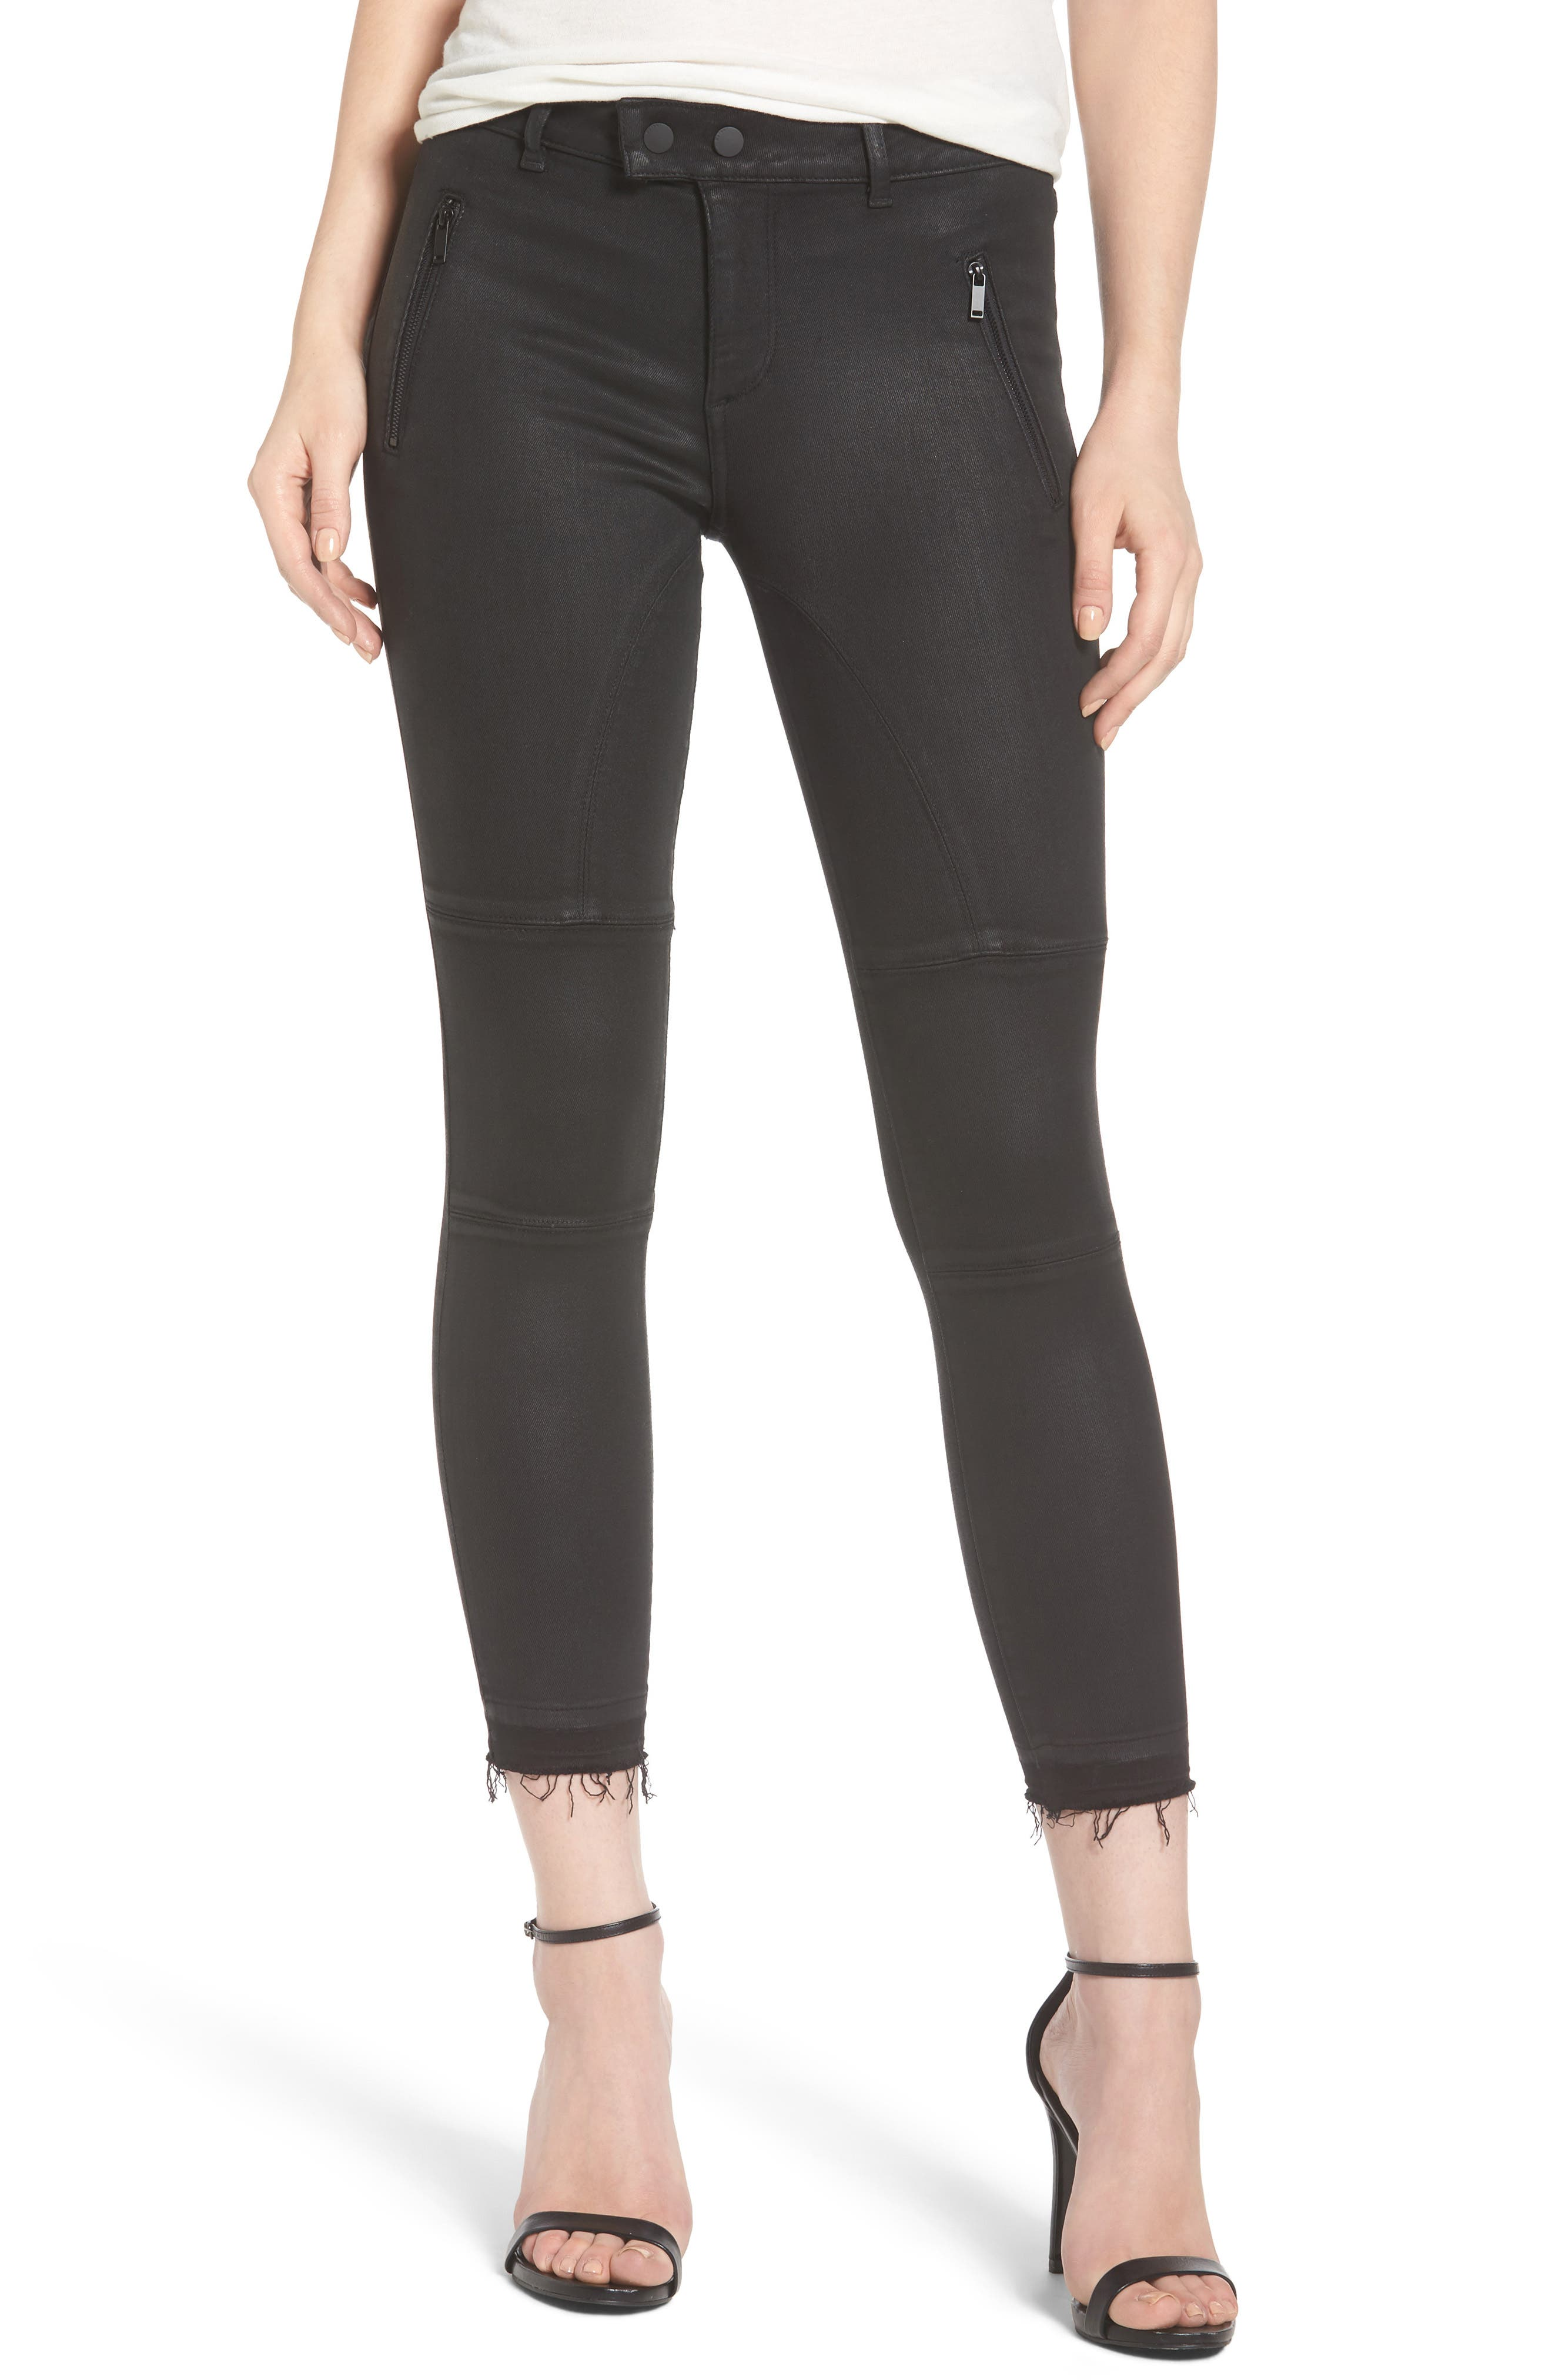 Main Image - DL1961 Florence Instasculpt Crop Skinny Jeans (Tarty)